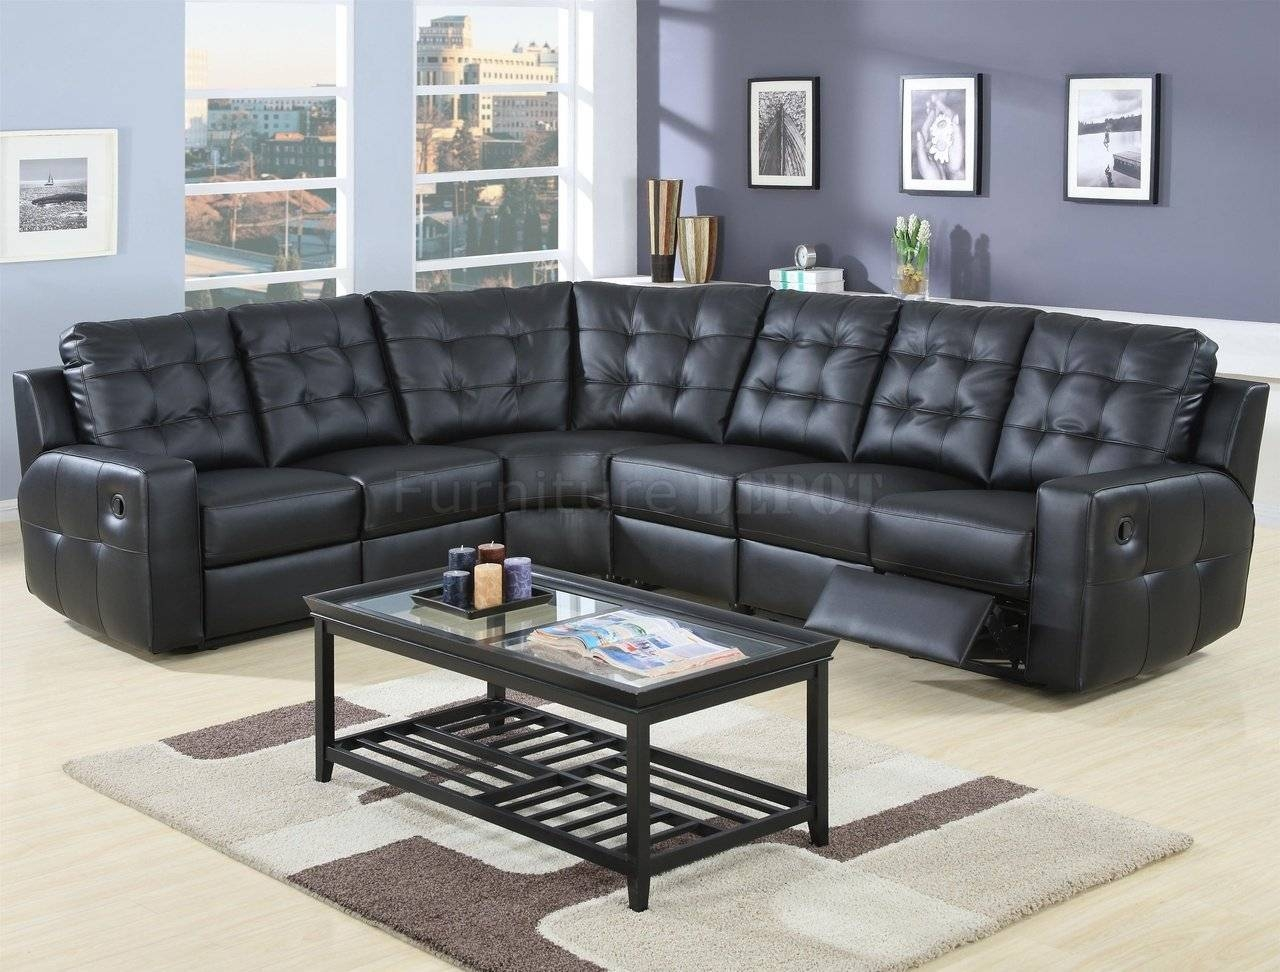 Sofas Center : Used Sofas Forleowner Greenville Sc regarding Sofas Indianapolis (Image 18 of 25)